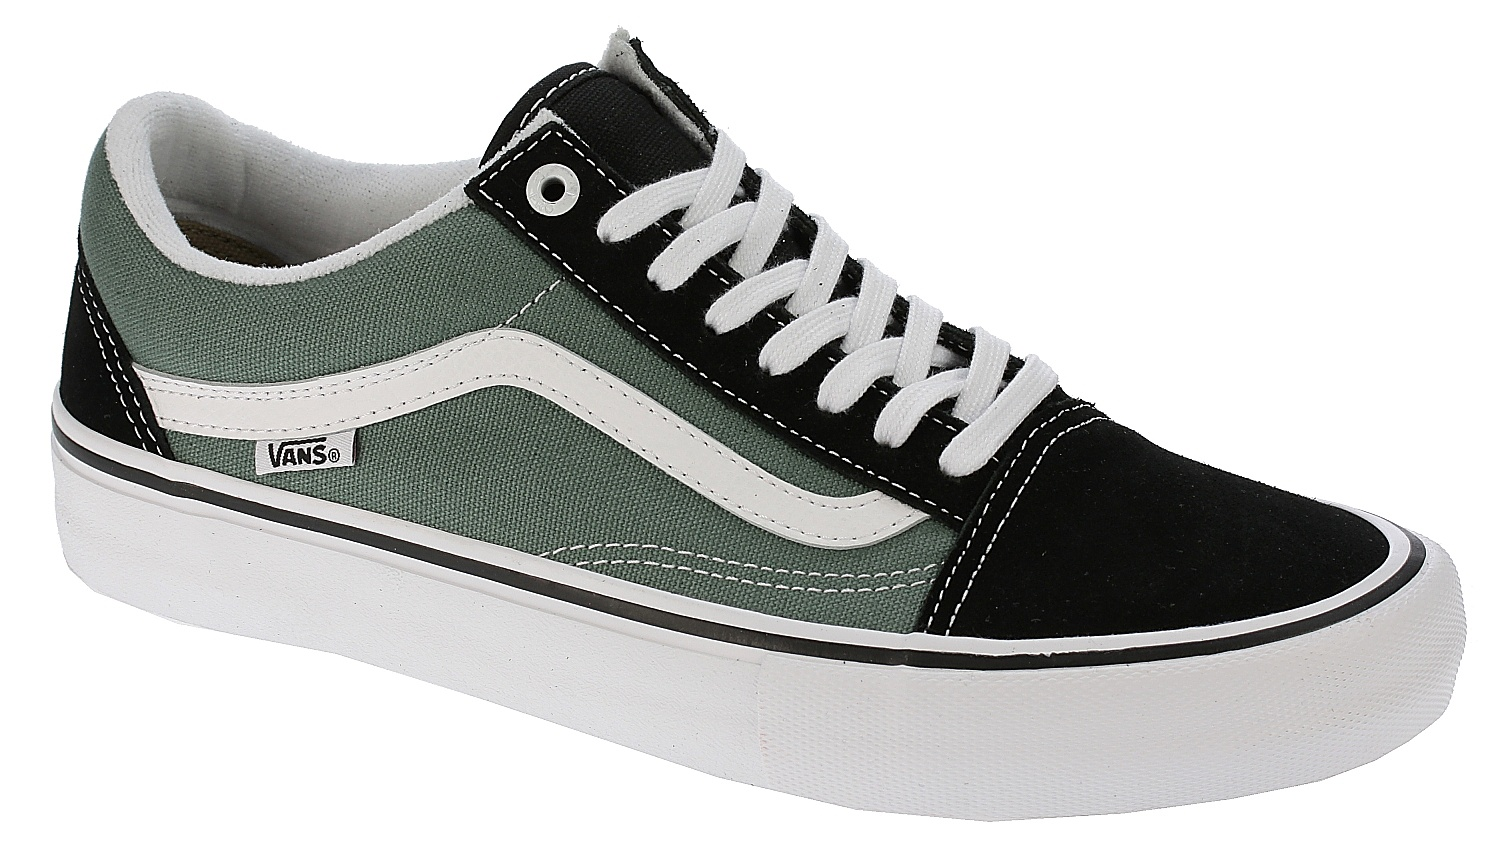 e326dff113cf96 shoes Vans Old Skool Pro - Black Duck Green - Snowboard shop ...